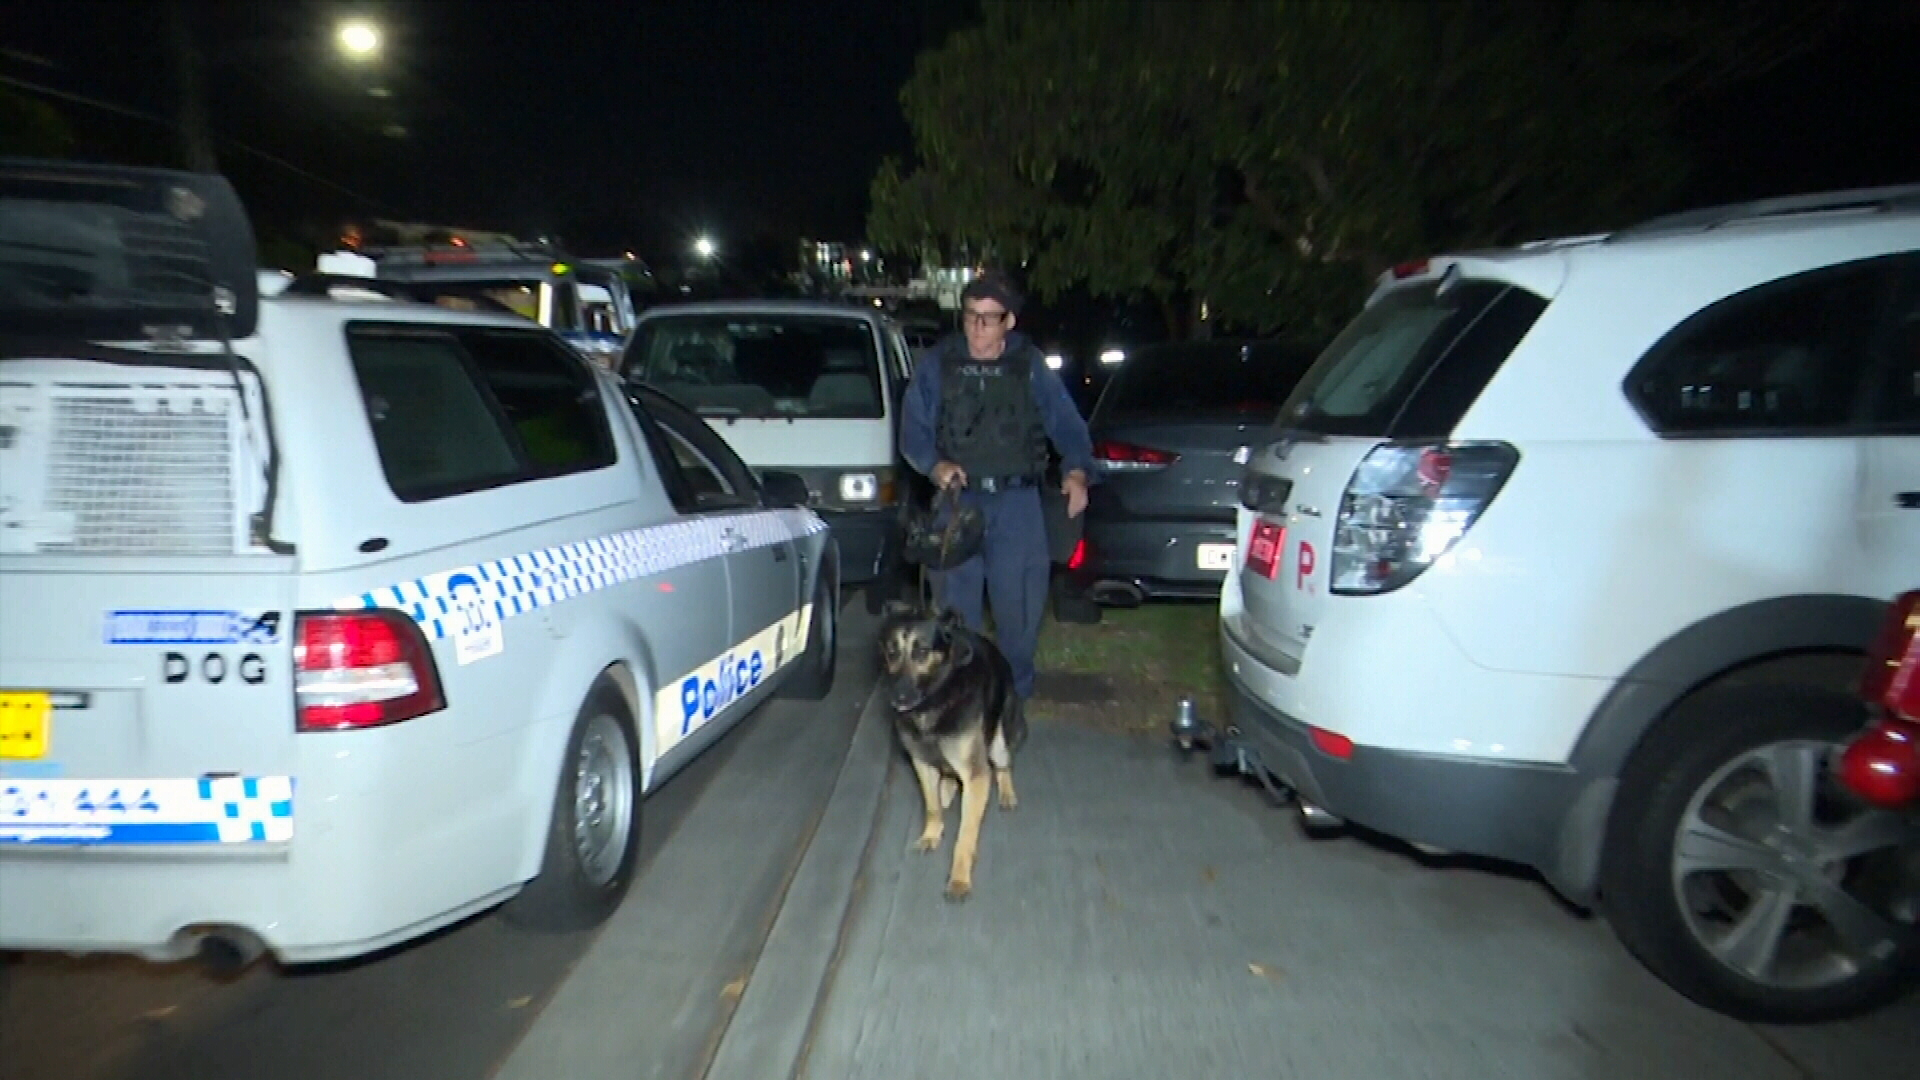 Stand-off in Sydney ends with two arrests